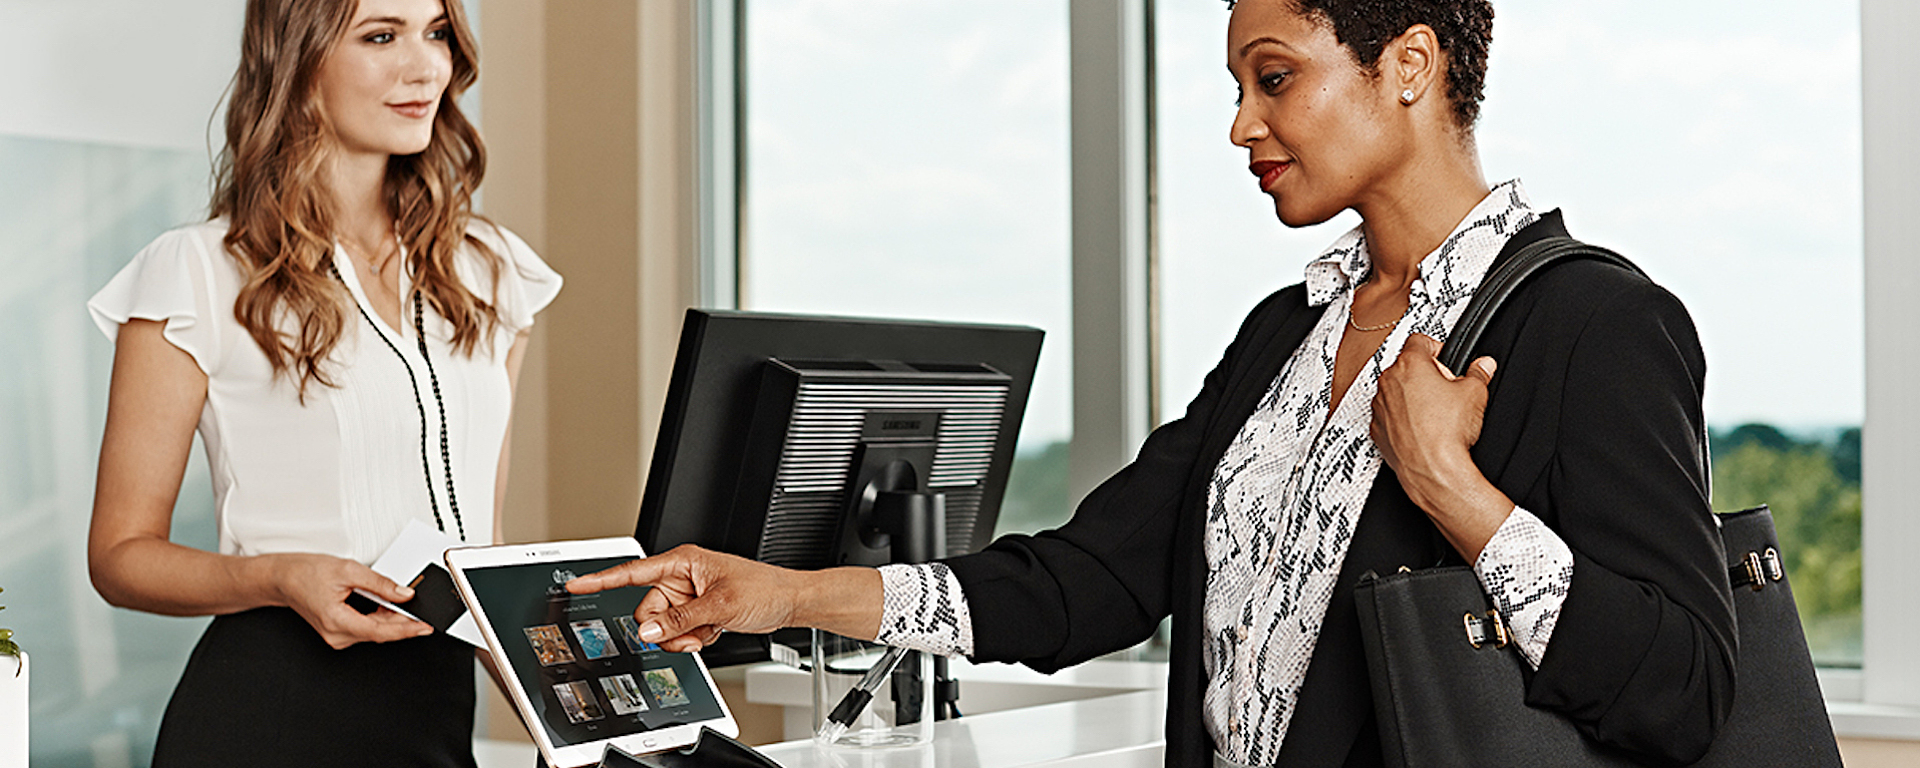 Self-service kiosks are becoming increasingly popular with air passengers.